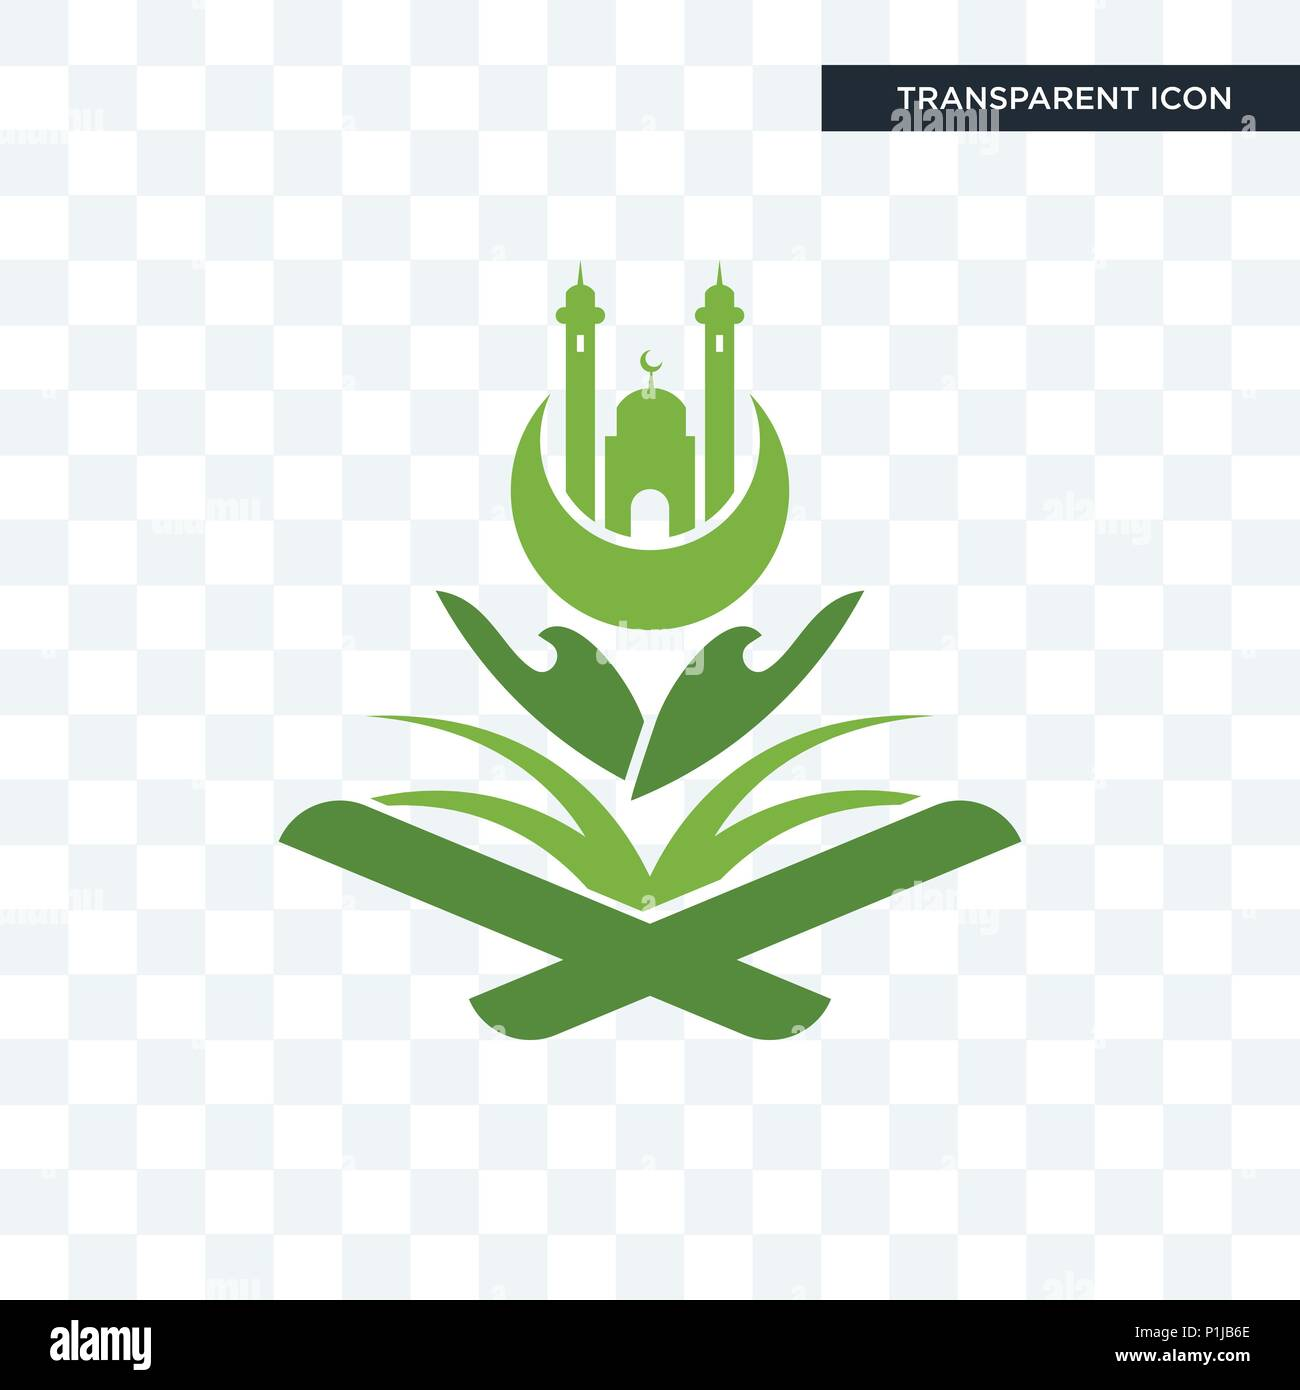 quran vector icon isolated on transparent background quran logo concept stock vector image art alamy https www alamy com quran vector icon isolated on transparent background quran logo concept image207543014 html